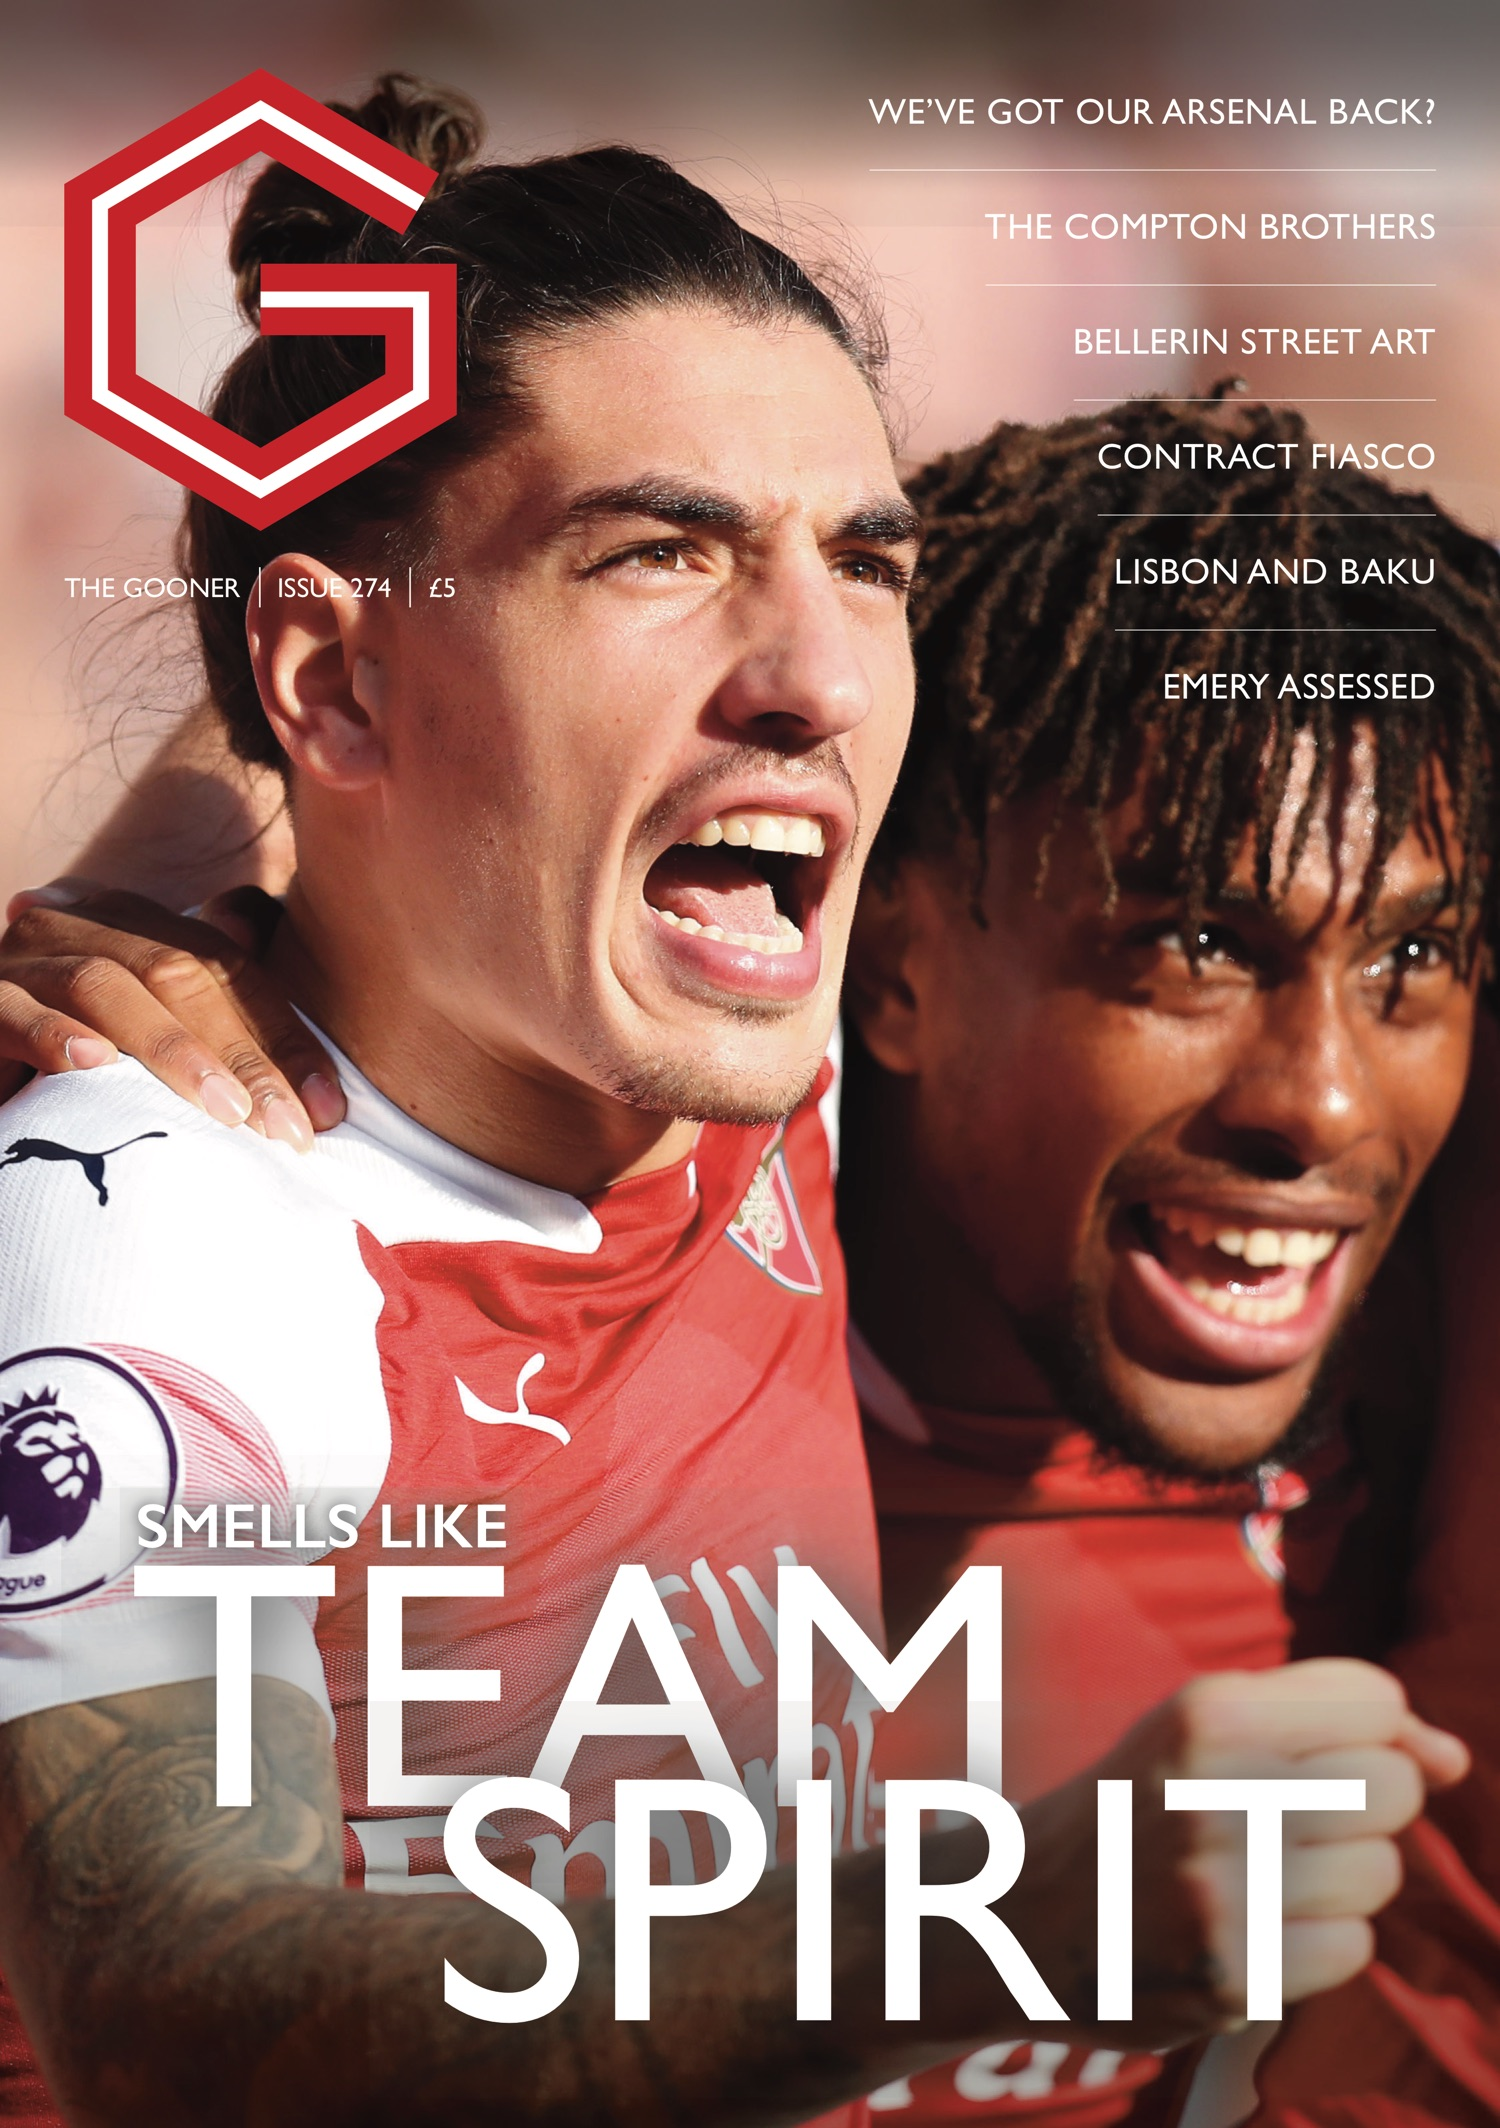 The Gooner Issue 274